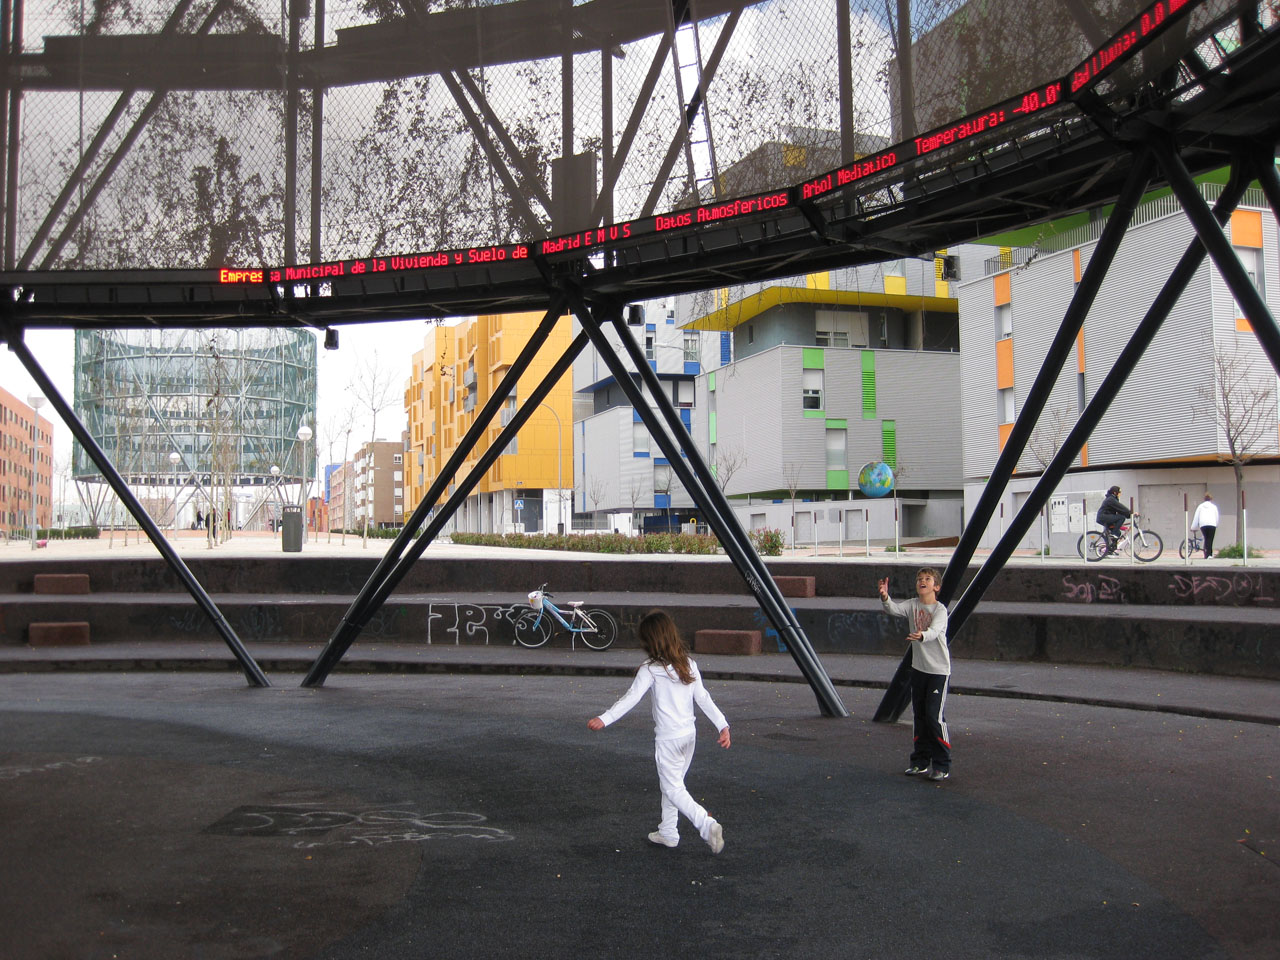 Children playing under Madrid's Eco-boulevard Air Trees by Ecosistema Urbano